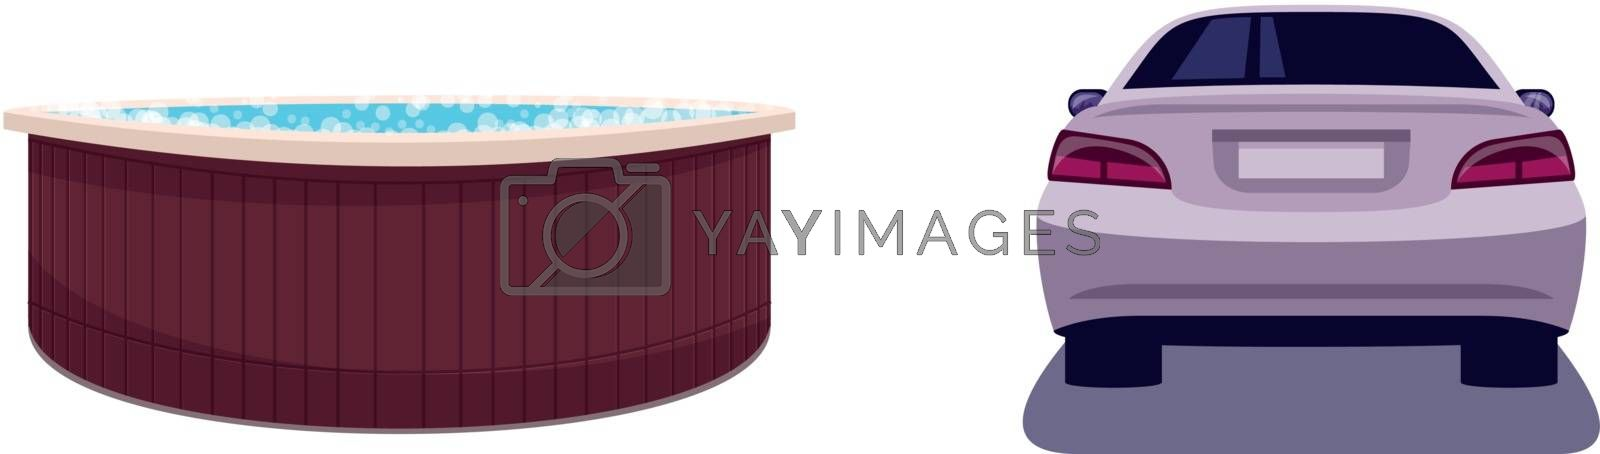 Weekend entertainment semi flat RGB color vector illustration set. Hot tub for relaxation. Bathtub with bubbles. Auto for driving. Private luxury isolated cartoon object on white background collection